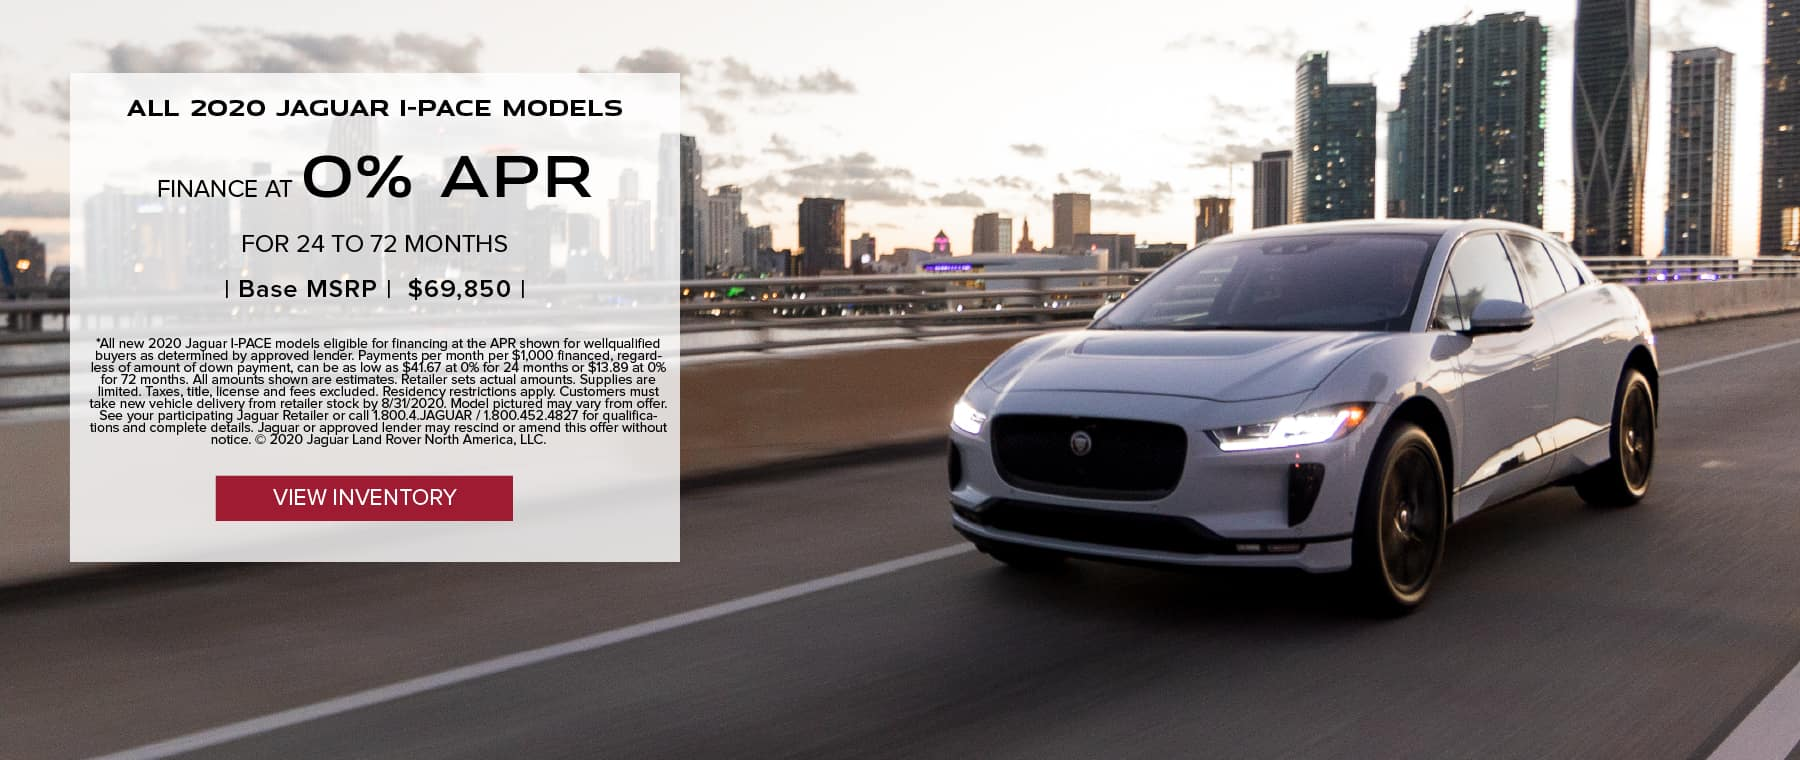 ALL 2020 JAGUAR I-PACE MODELS. BASE MSRP FROM $69,850. FINANCE AT 0% APR FOR 24 TO 72 MONTHS. EXCLUDES TAXES, TITLE, LICENSE AND FEES. ENDS 8/31/2020. VIEW INVENTORY. SILVER JAGUAR I-PACE DRIVING DOWN ROAD IN CITY.